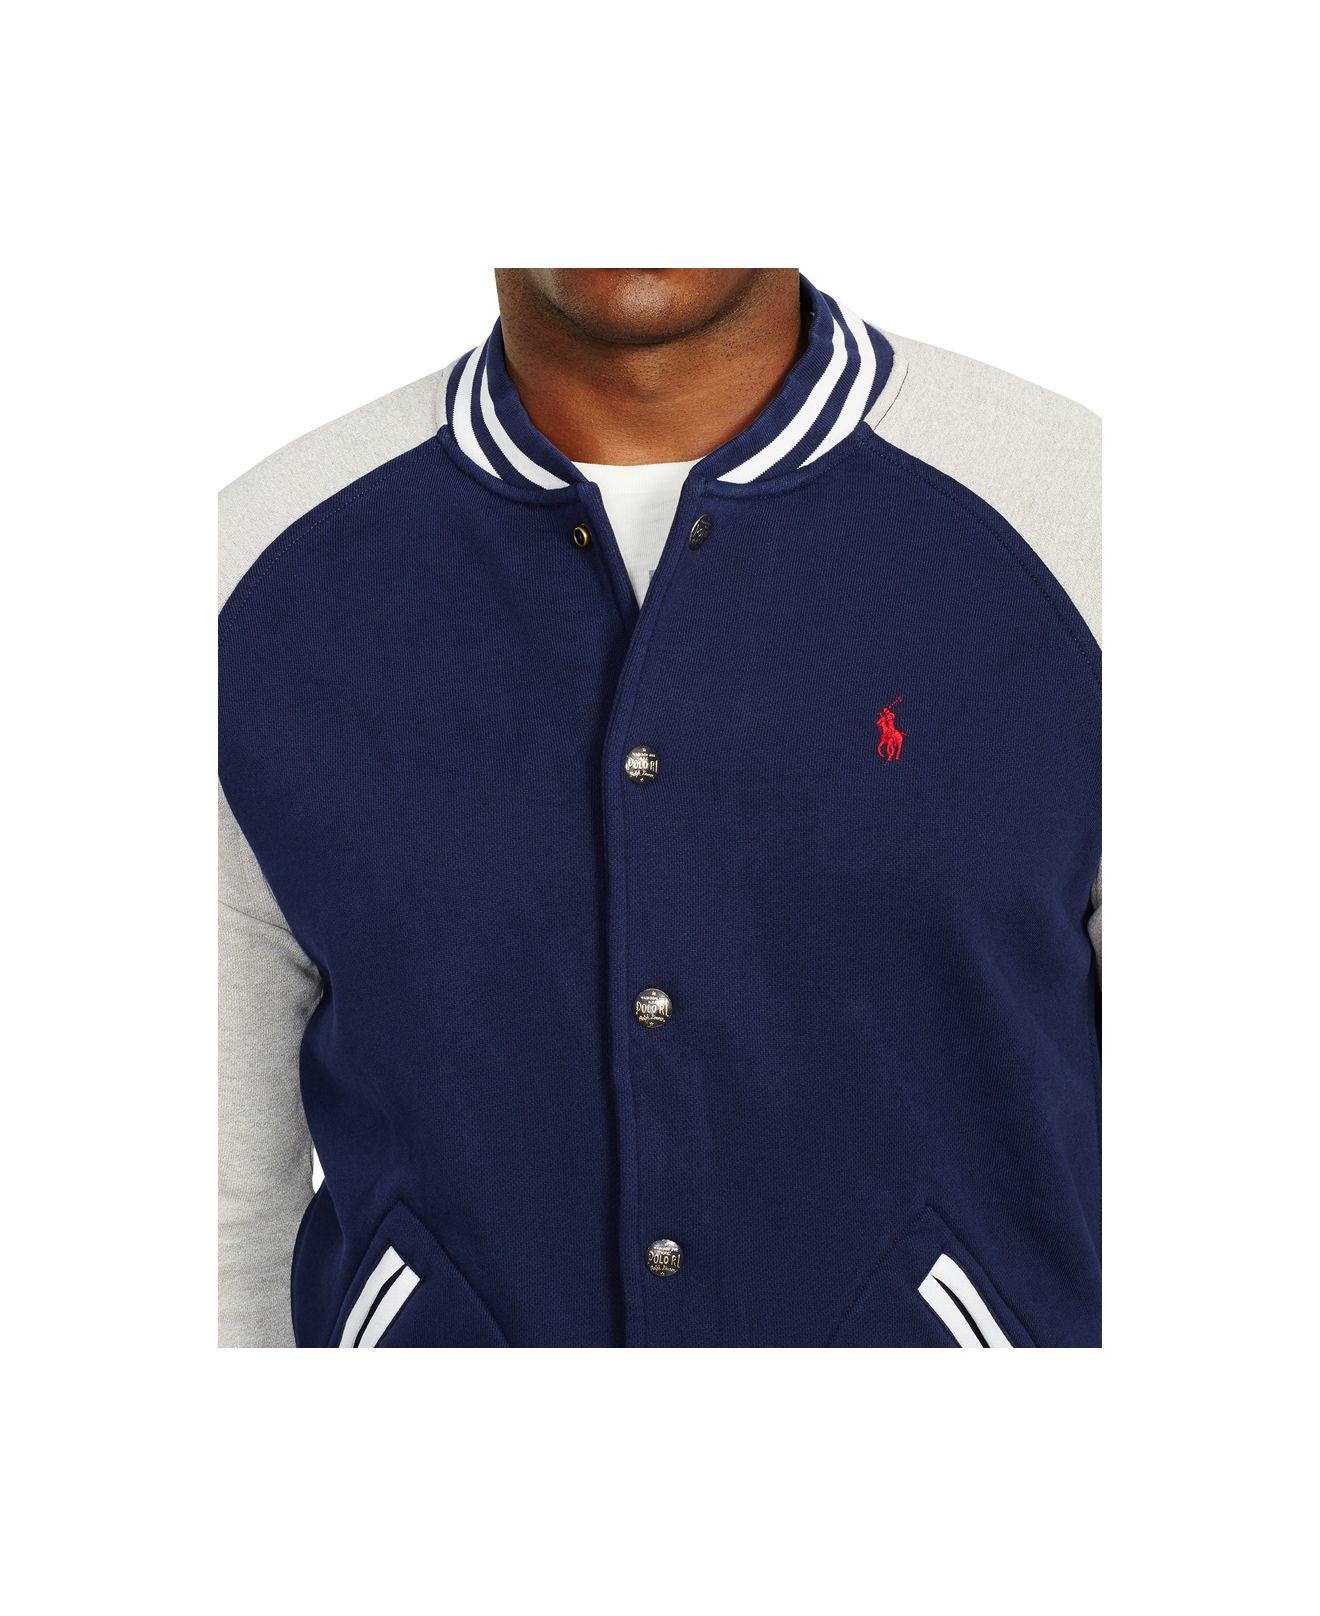 Lyst Polo Ralph Lauren Big Tall Fleece Baseball Jacket